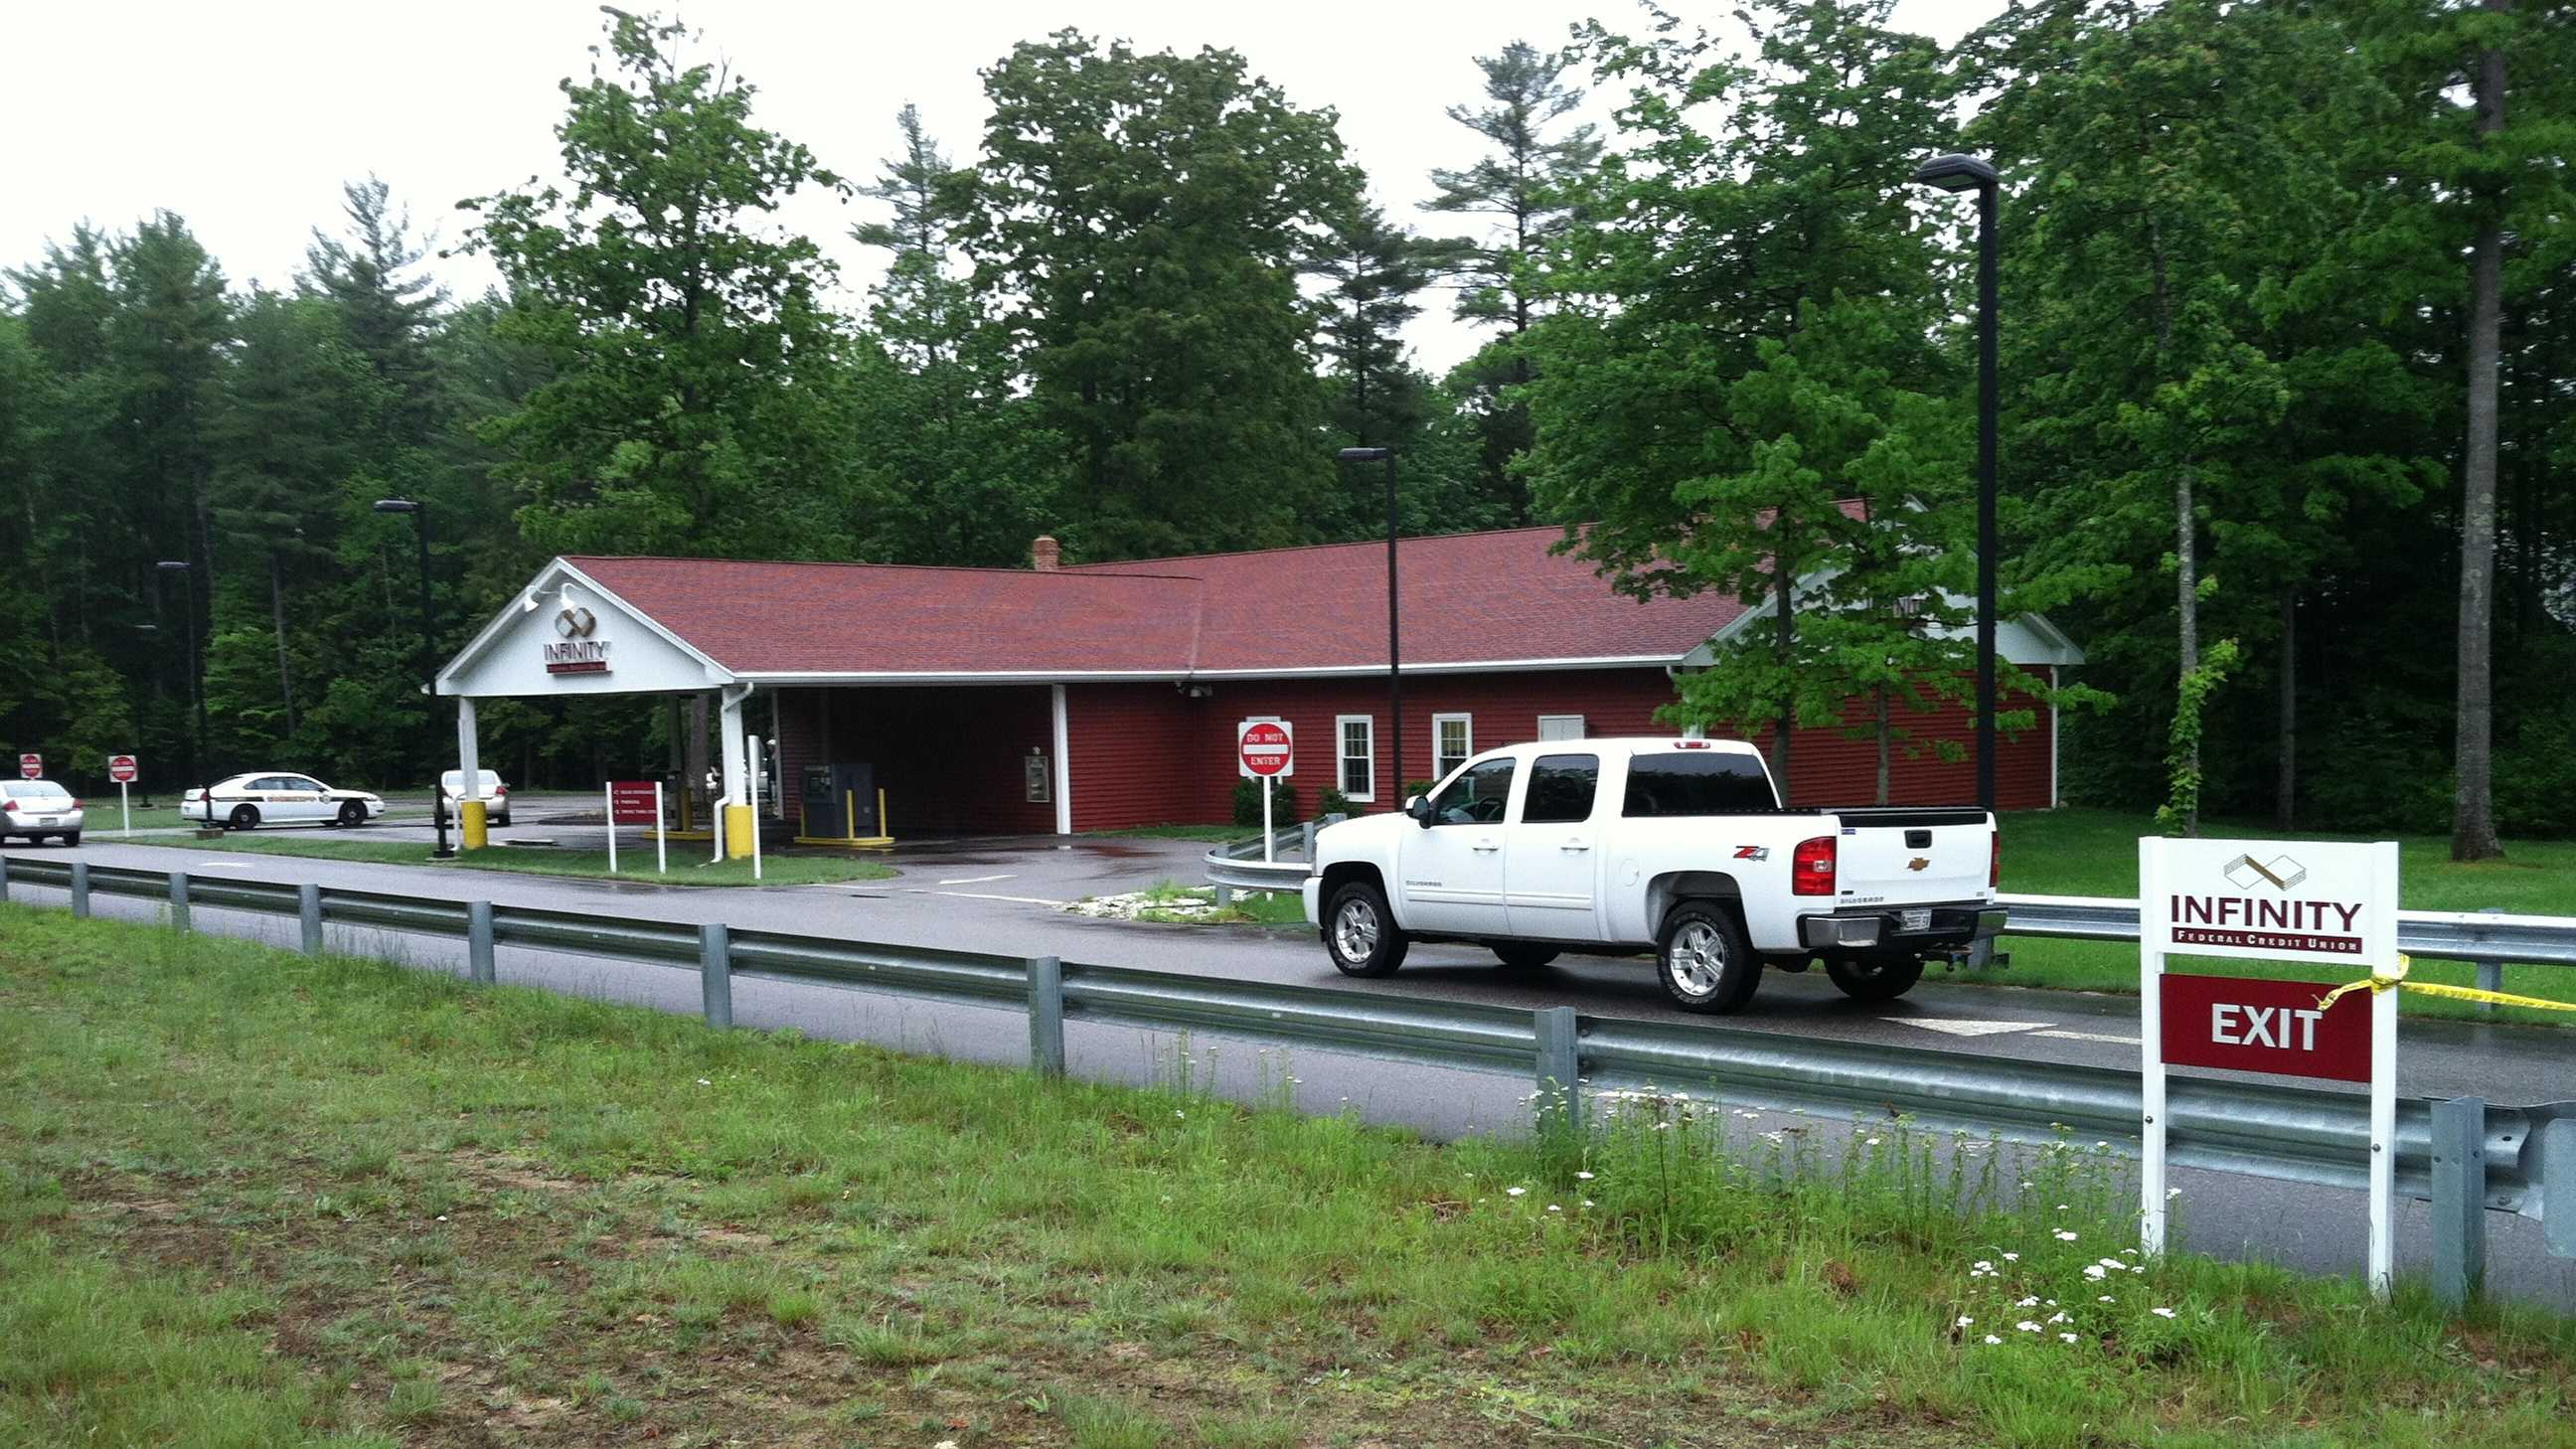 The Infinity Federal Credit Union in Arundel was robbed on May 29.